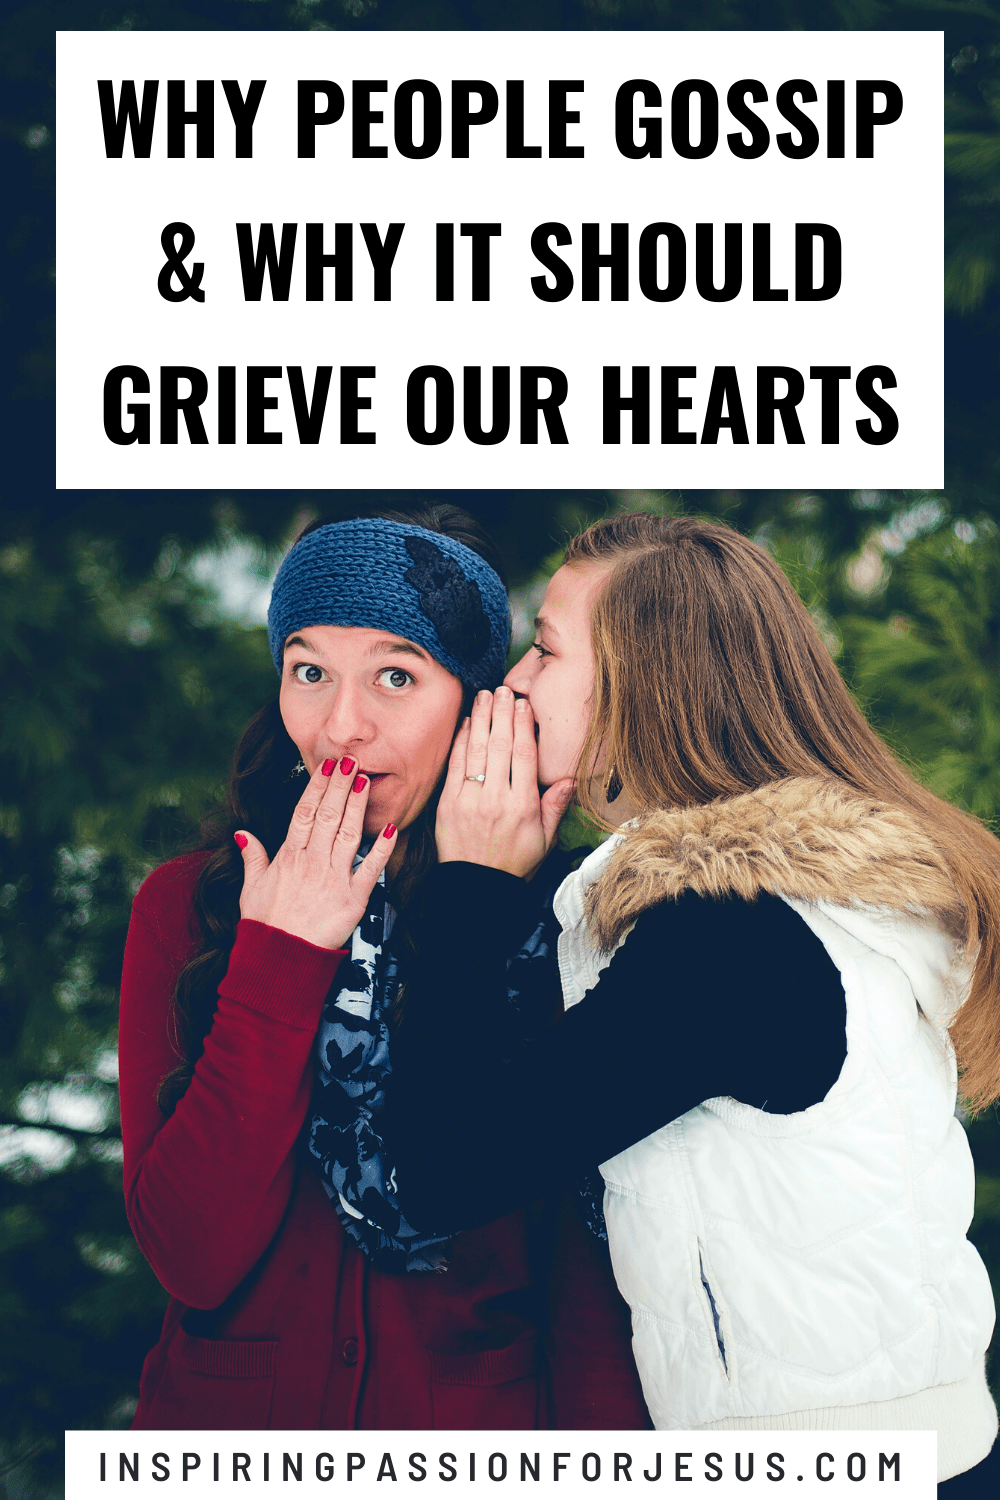 Why People Gossip & Why It Should Grieve Our Hearts